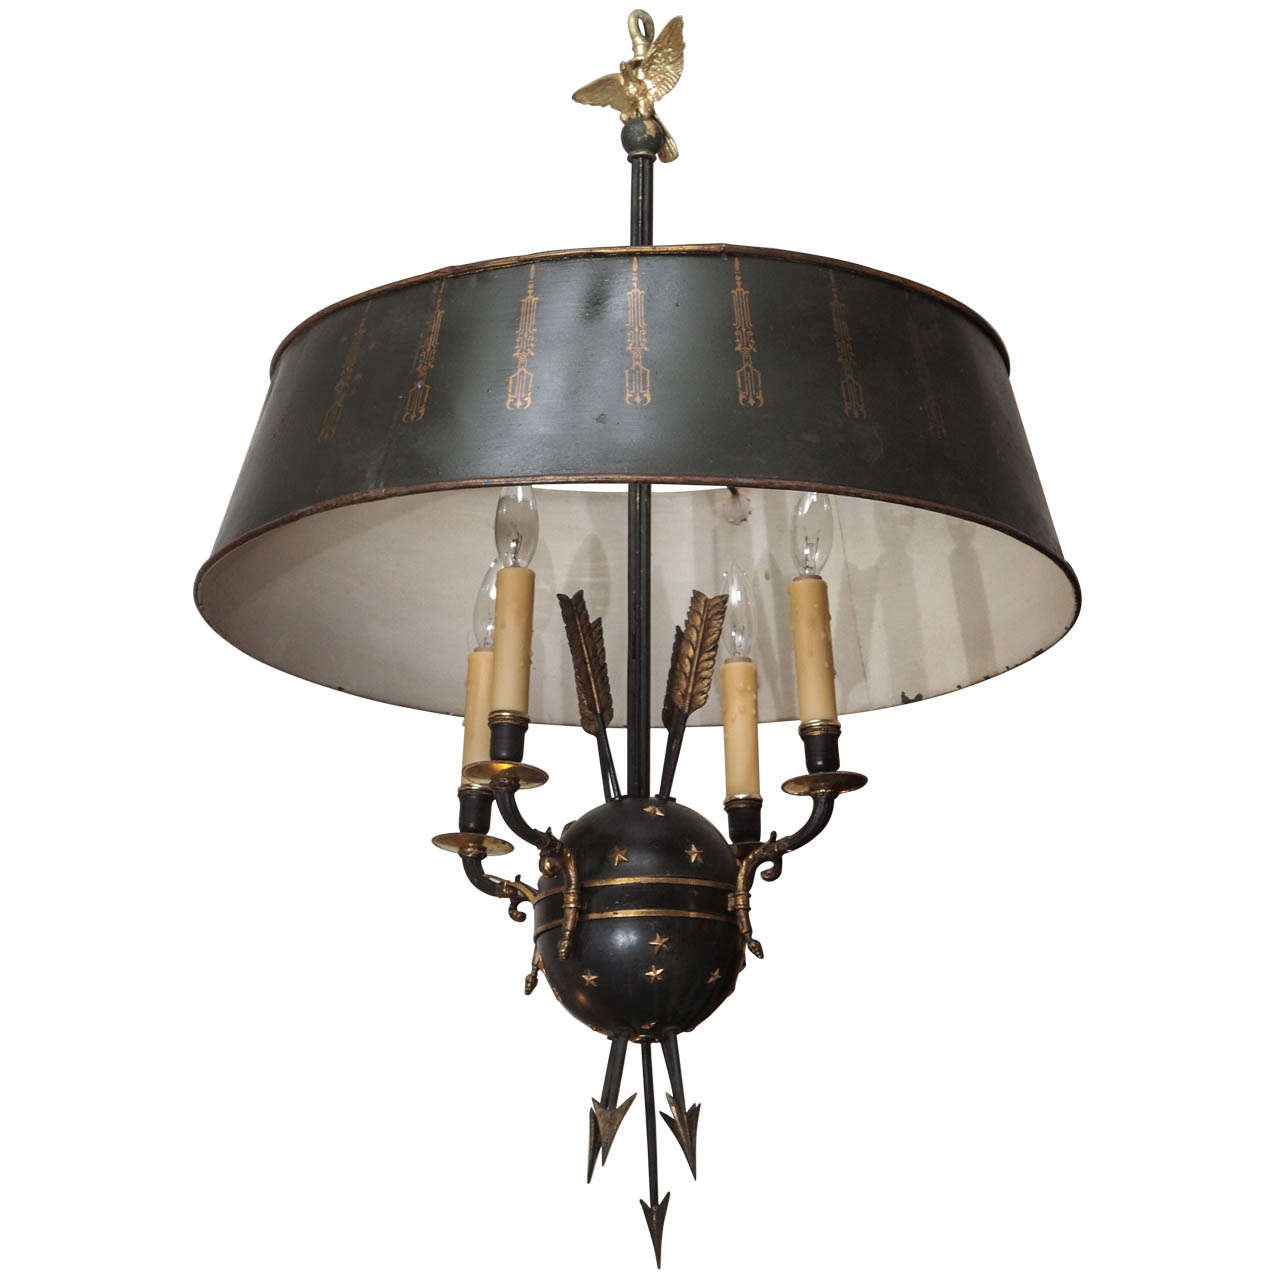 Tole and Brass Chandelier with Tole Shade